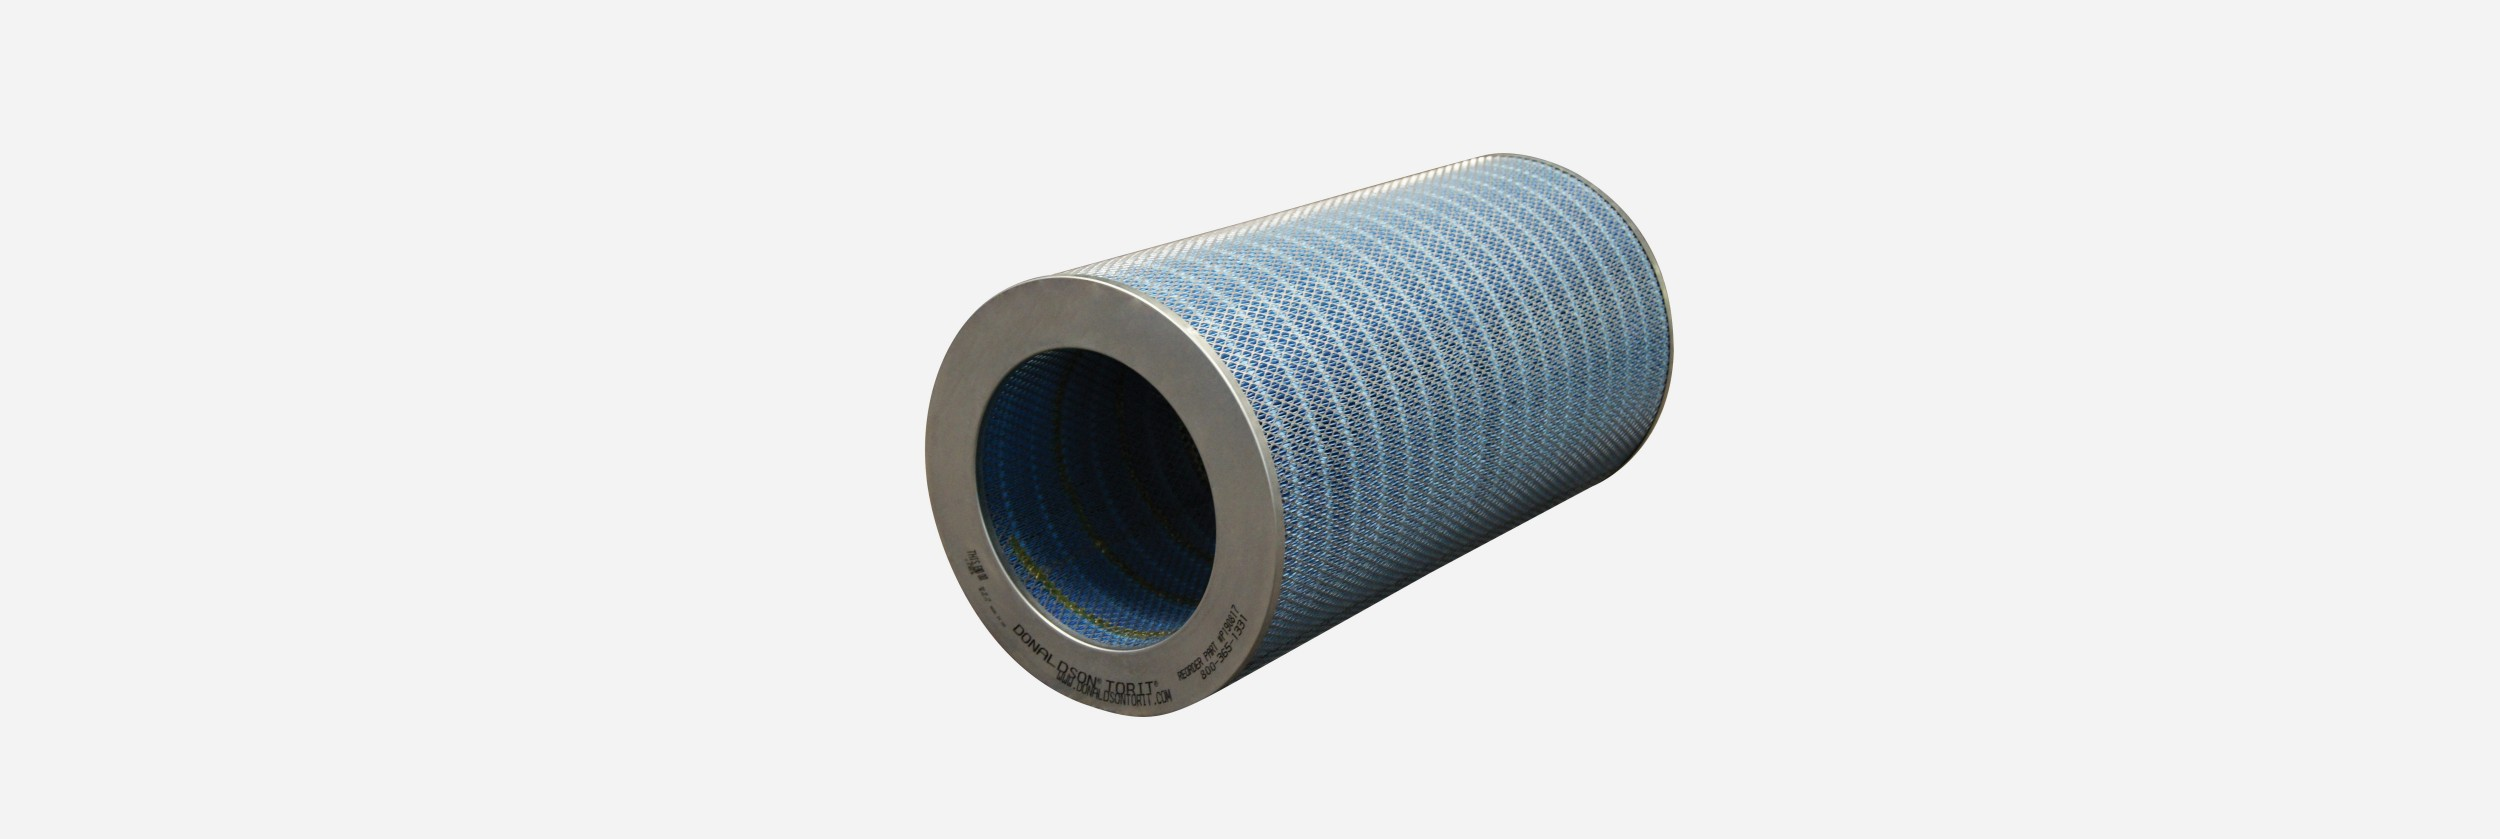 Donaldson Thermo Web Filters Hero Image | AIRPLUS Industrial